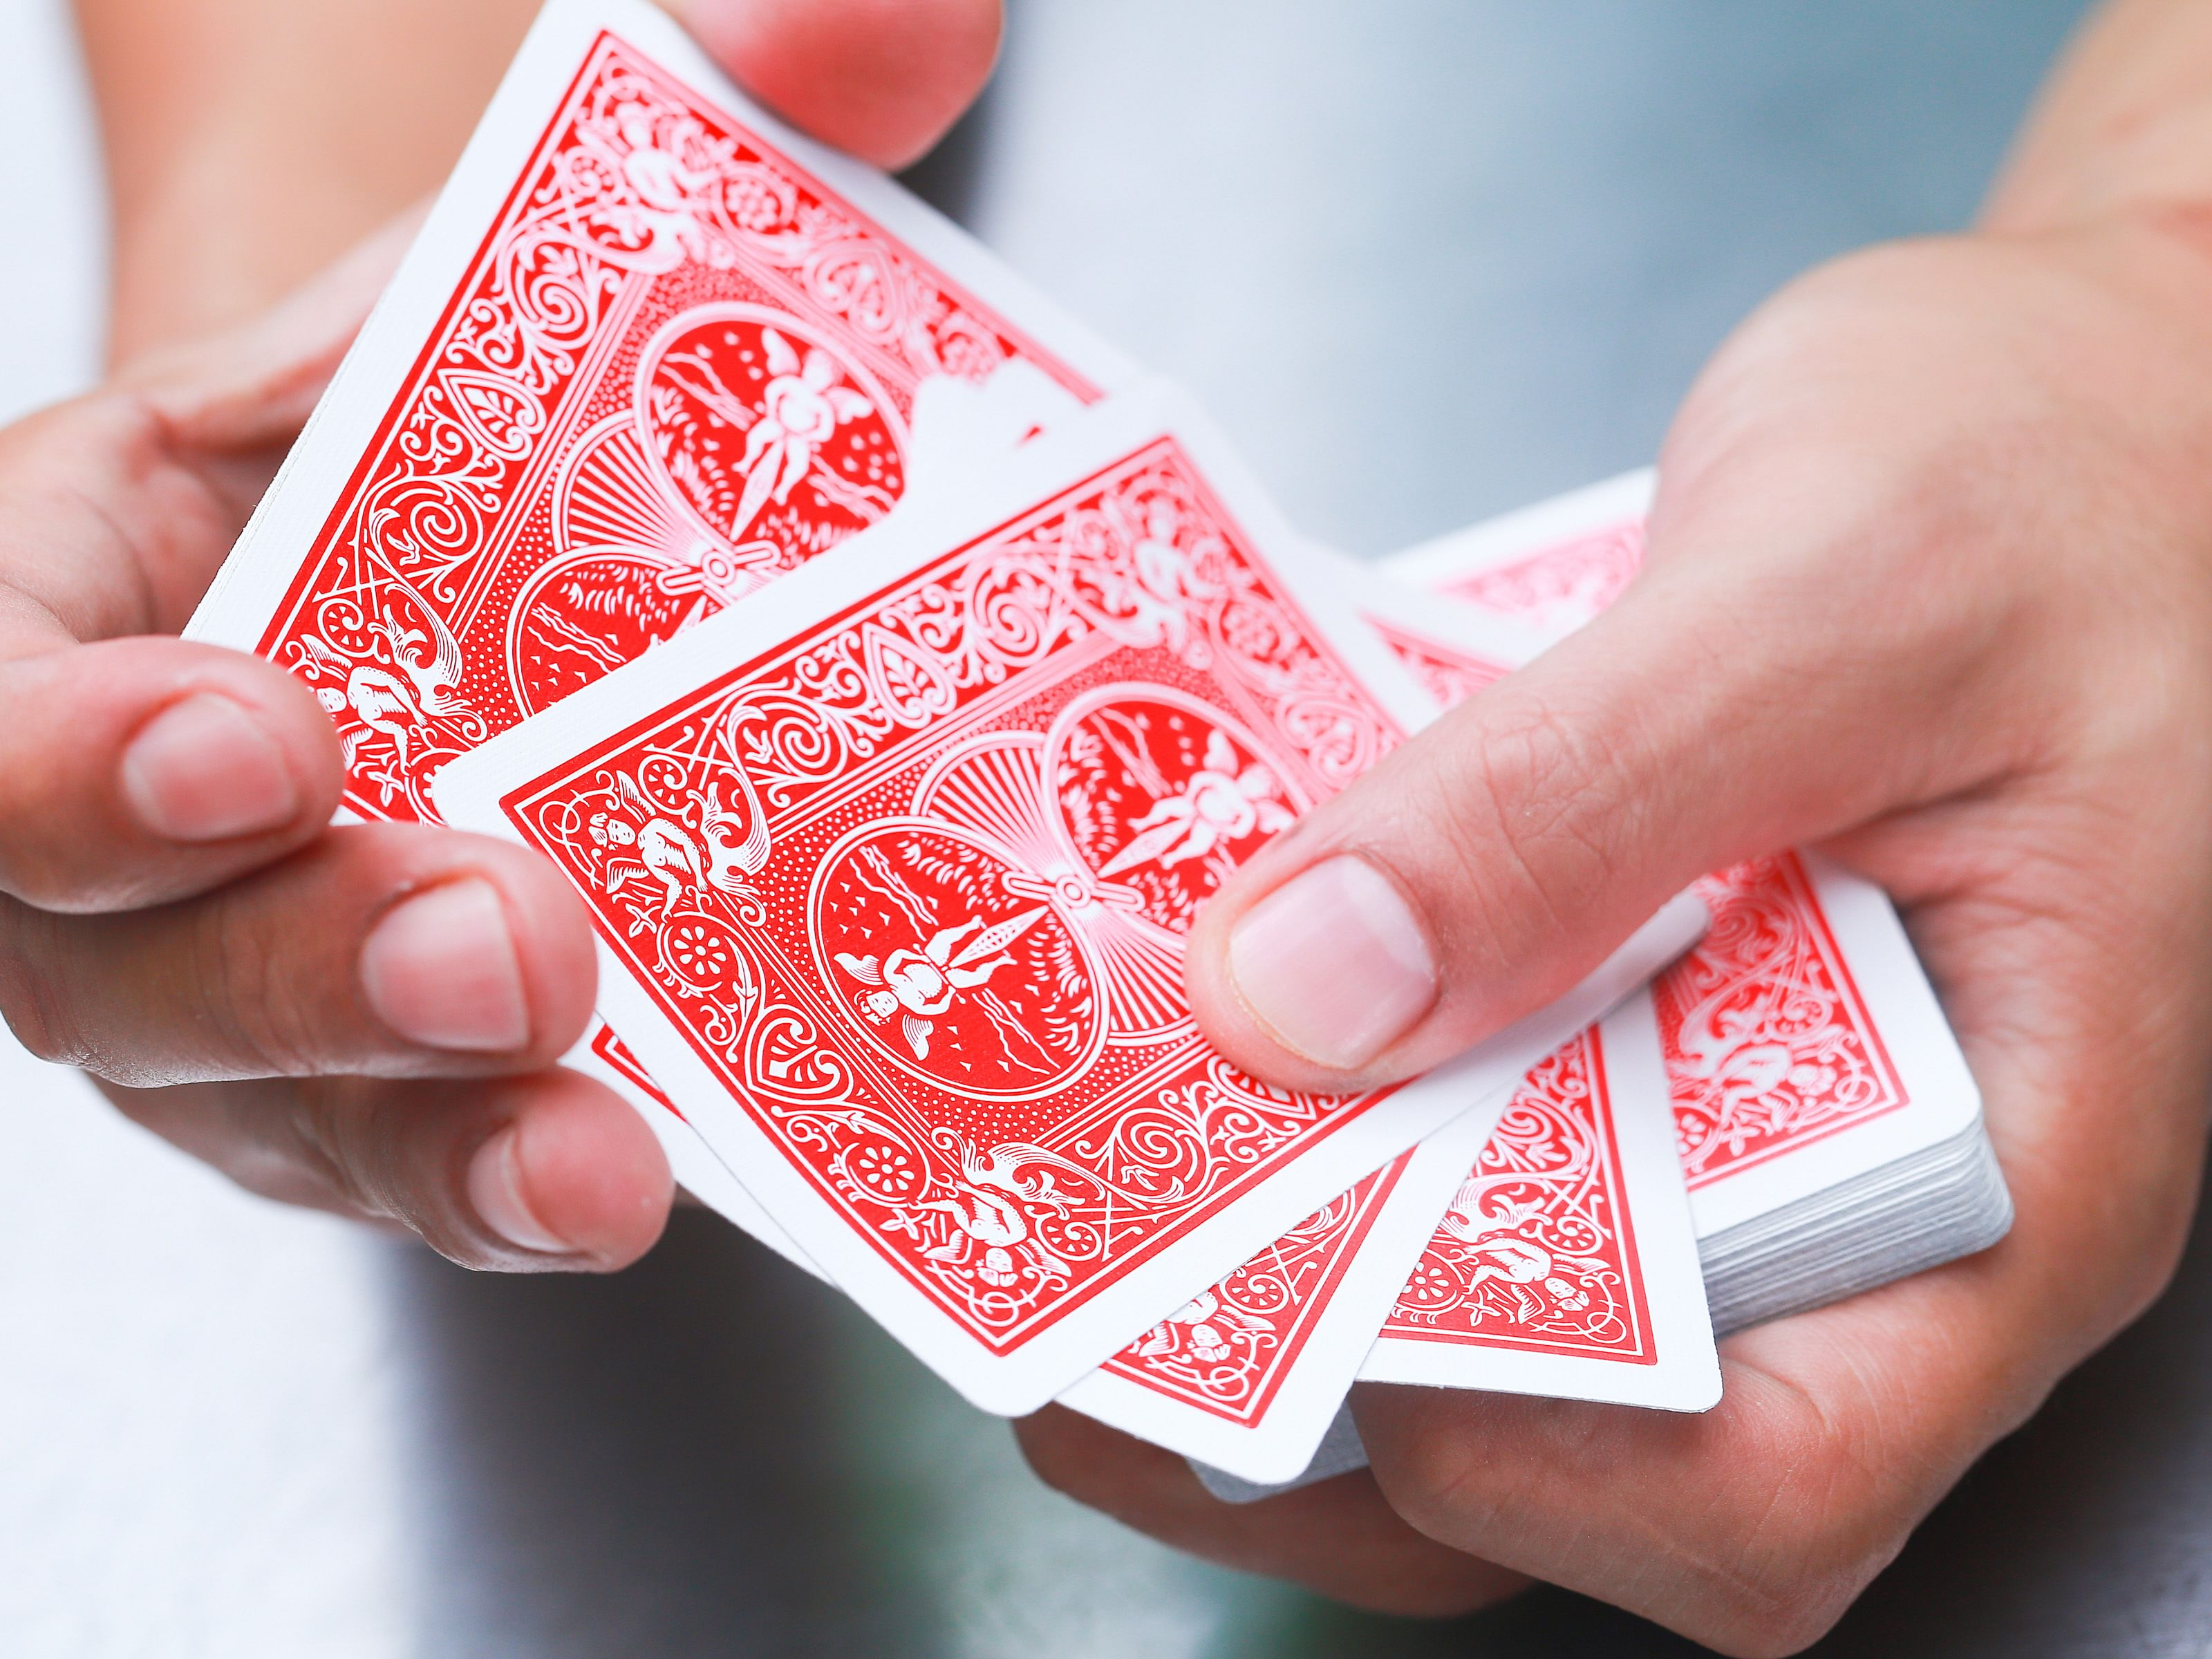 Beginner magician use red Bicycle playing cards to perform an easy card trick